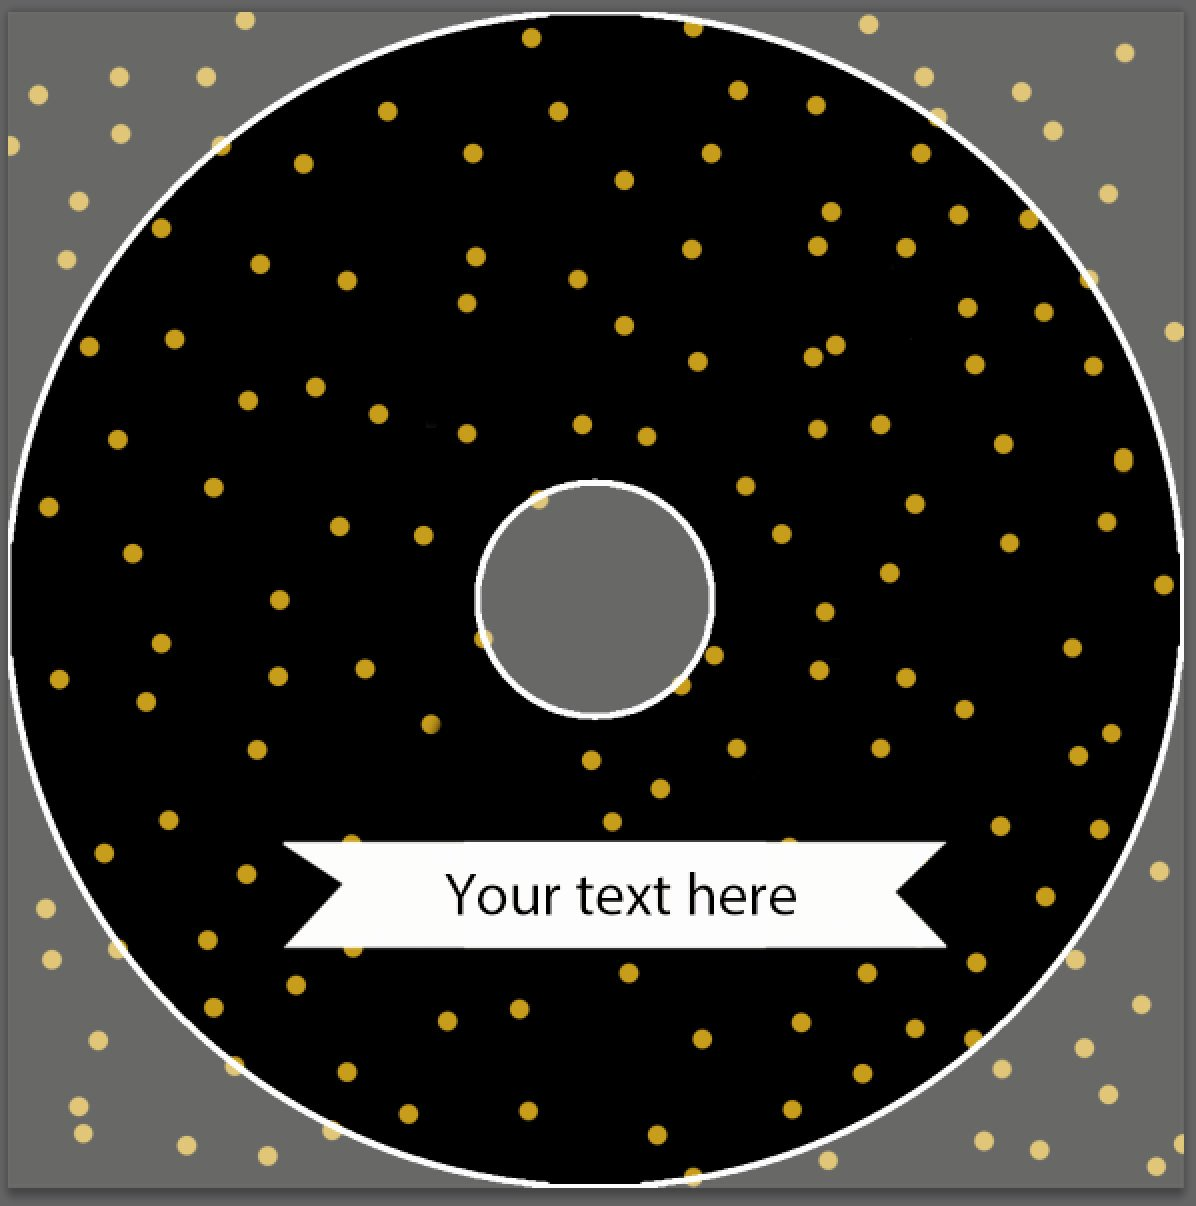 Avery 5931 Template Photoshop Fresh 20 Printed Gold Glitter Polka Dot Cd Dvd Labels Graphy